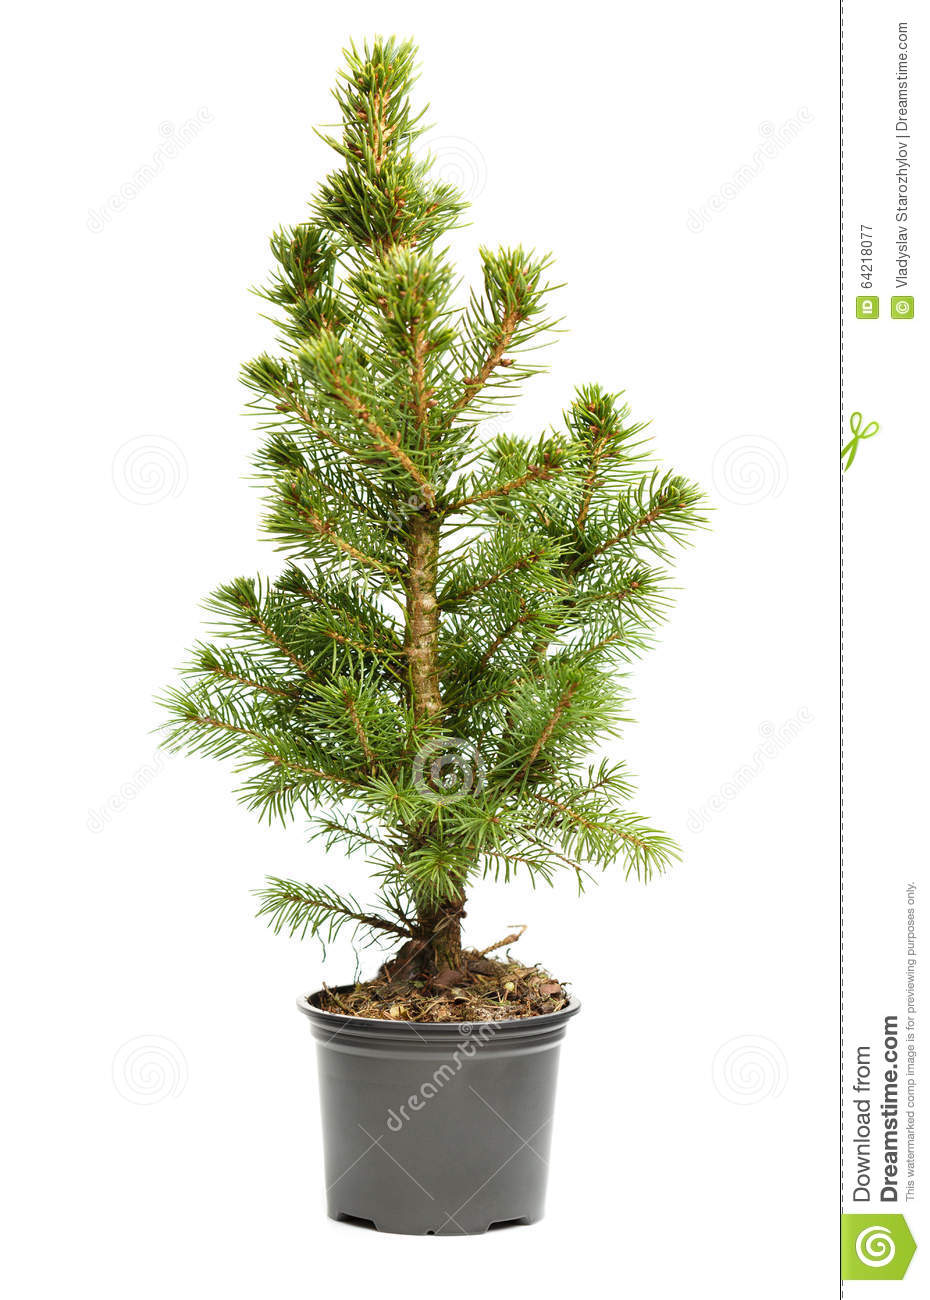 Small Real Undecorated Bare Christmas Tree In A Pot Stock